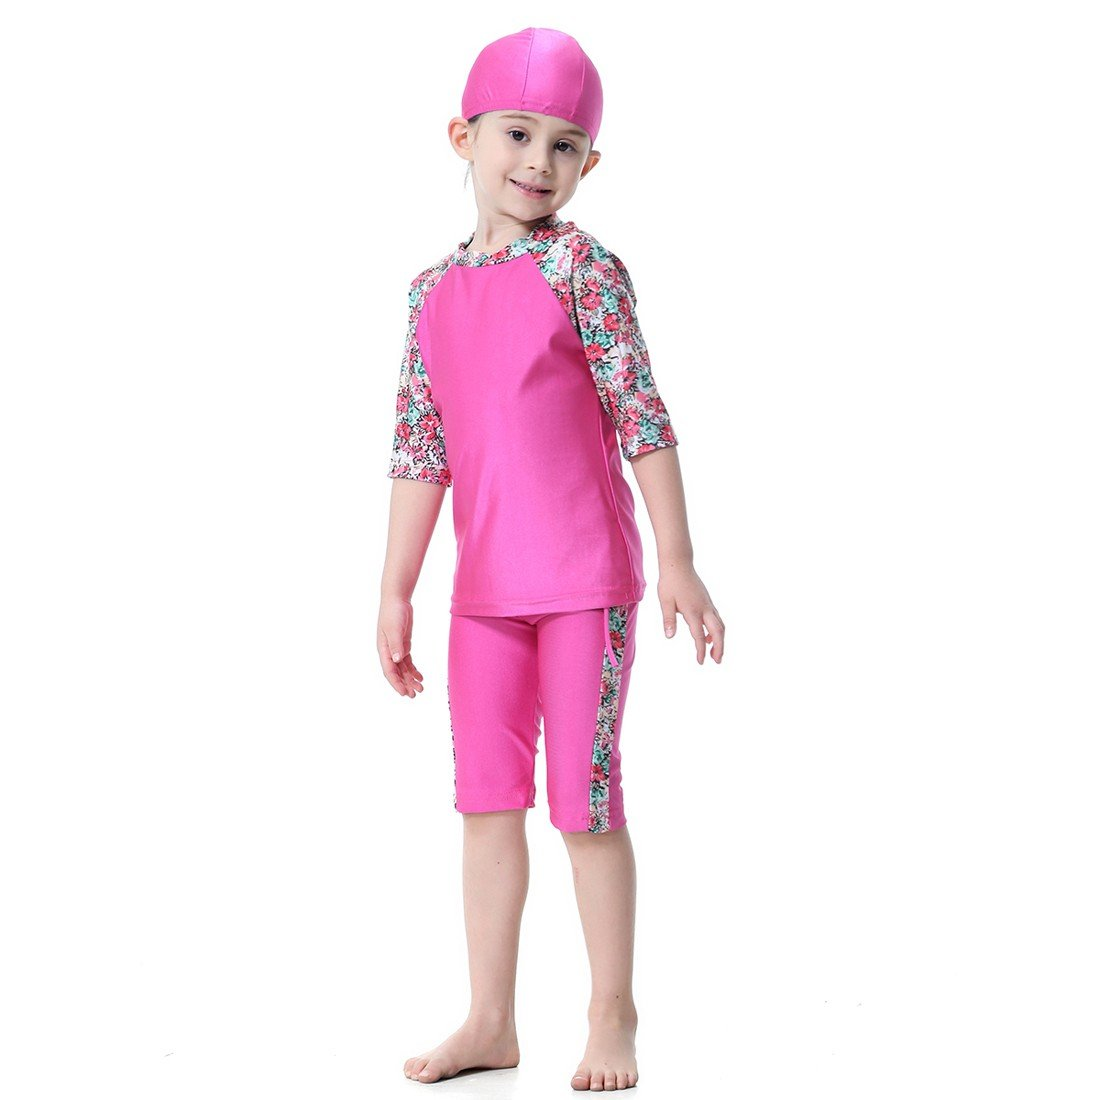 Paixpays Two Pieces Muslim Swimwear for Kids Islamic Swimsuit for Little Girl E9099S0104